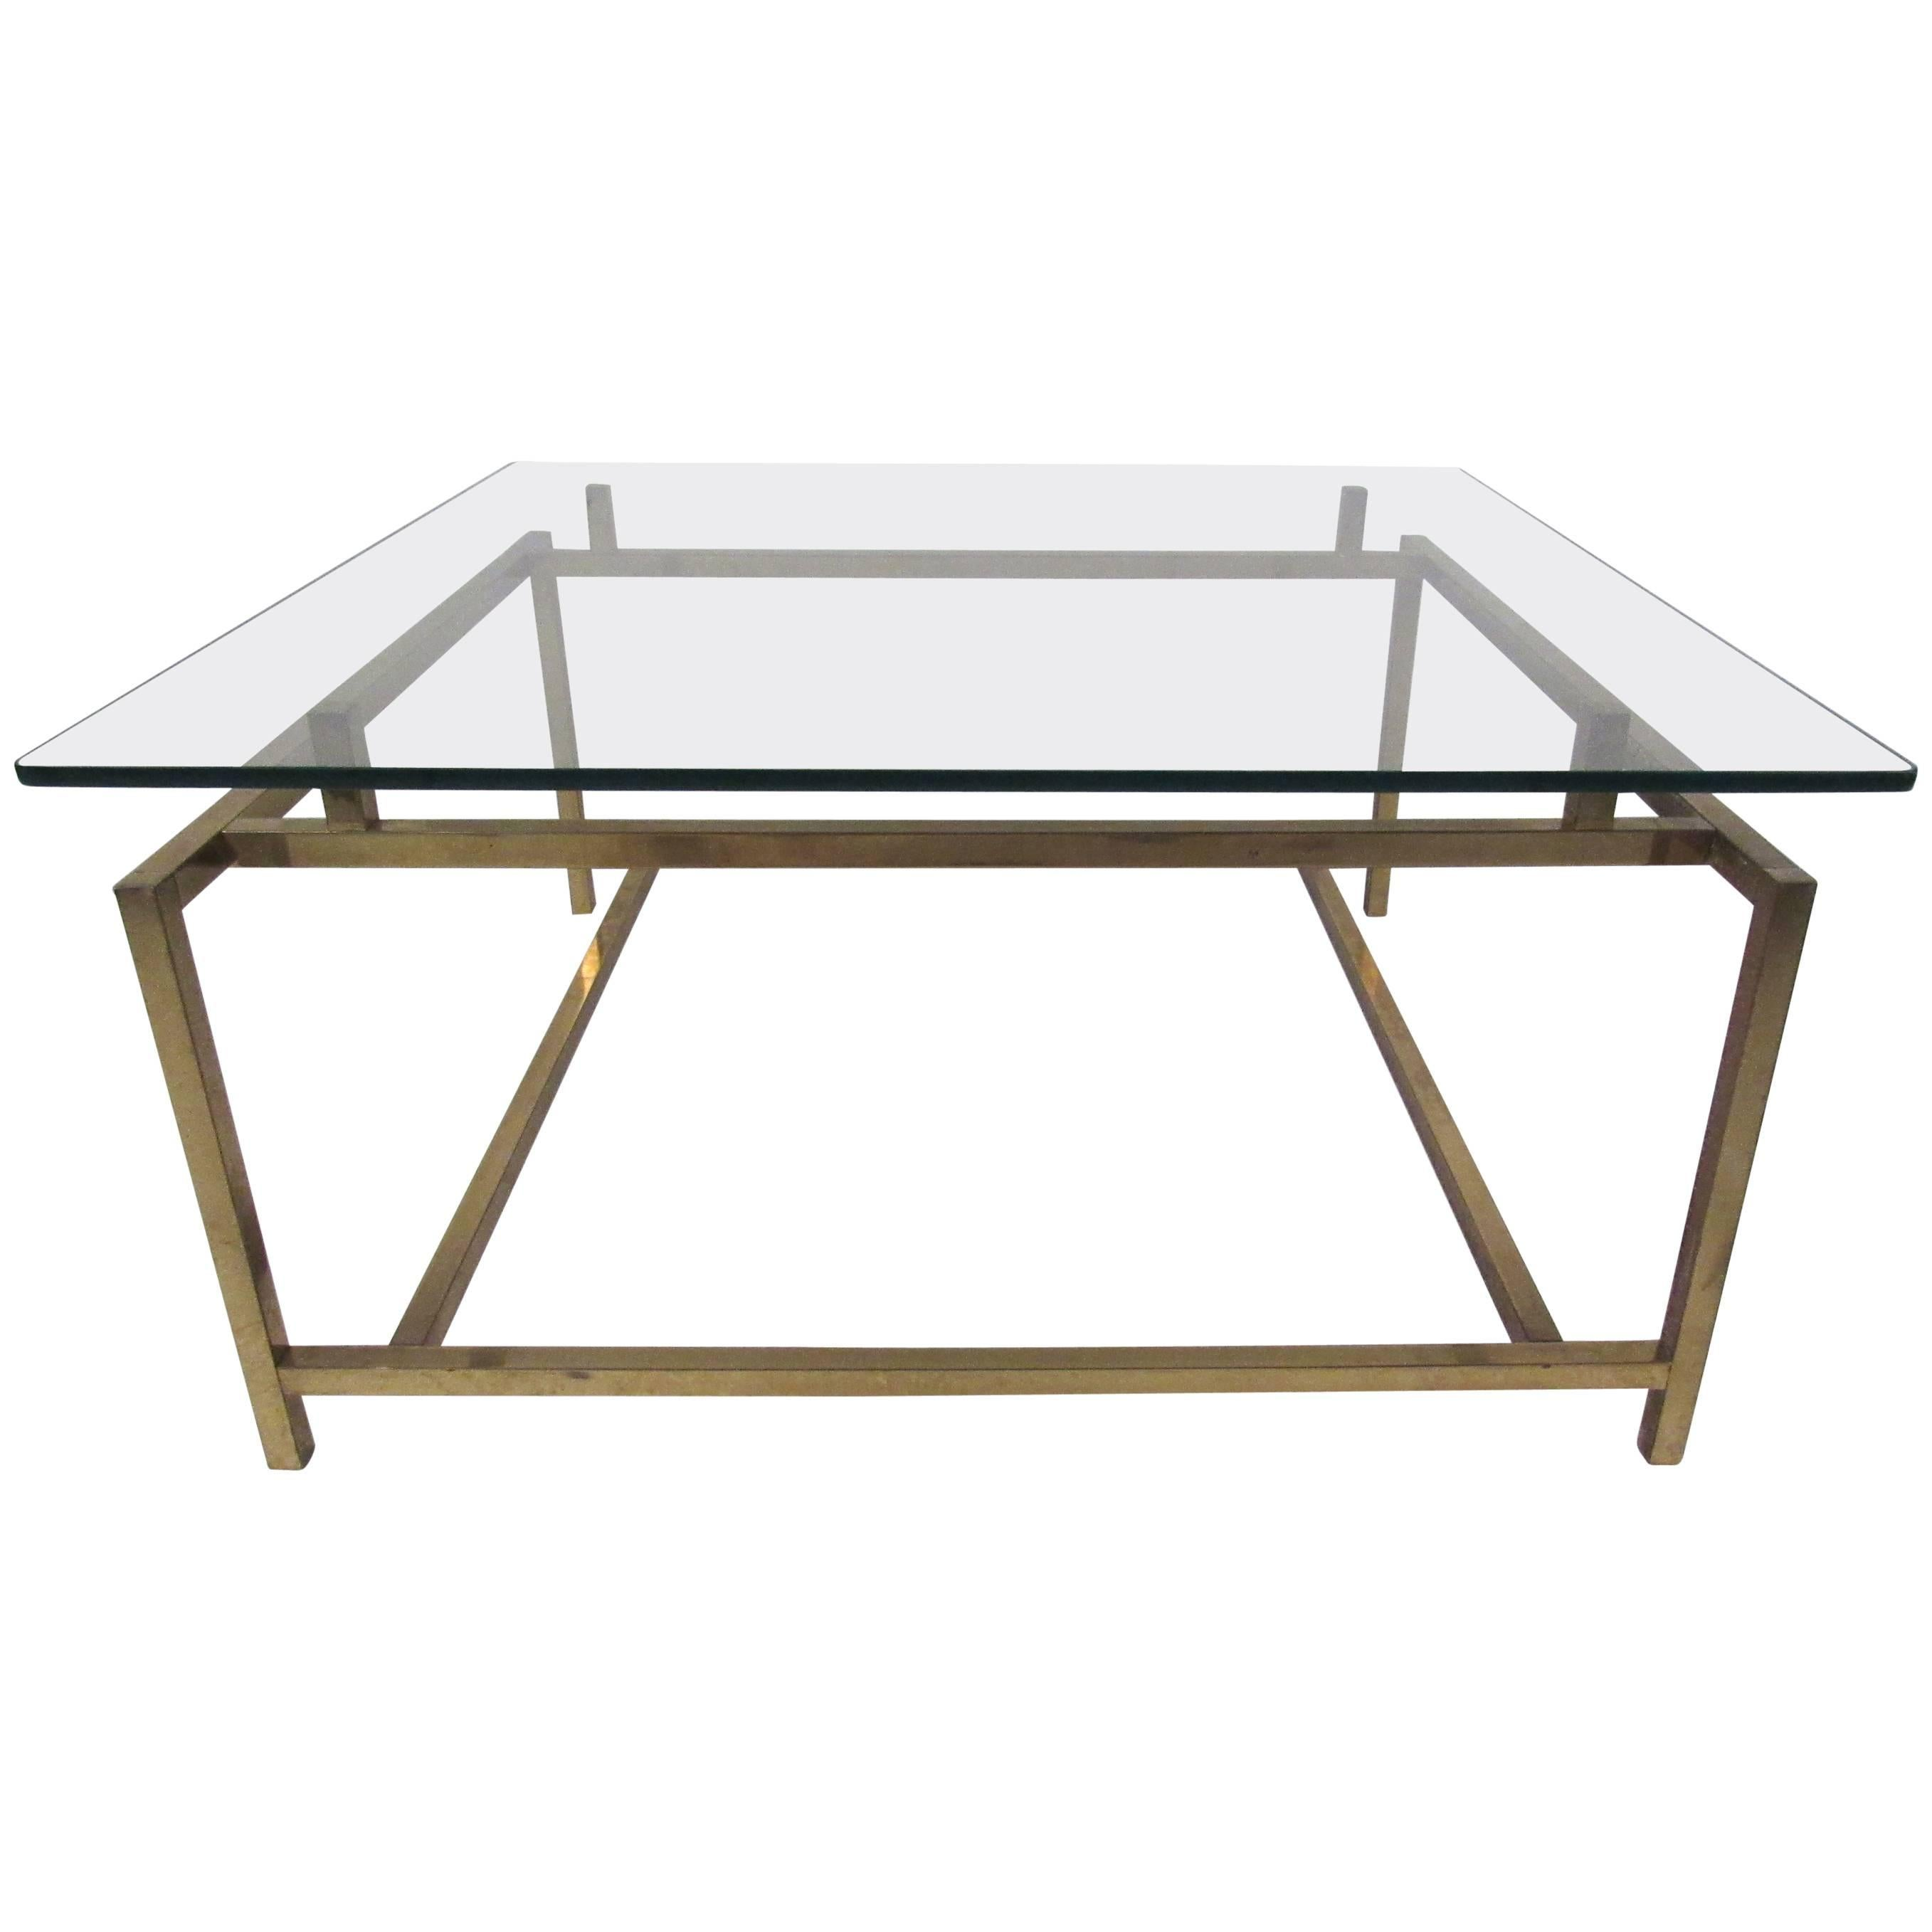 Henning Norgaard Style Coffee Table